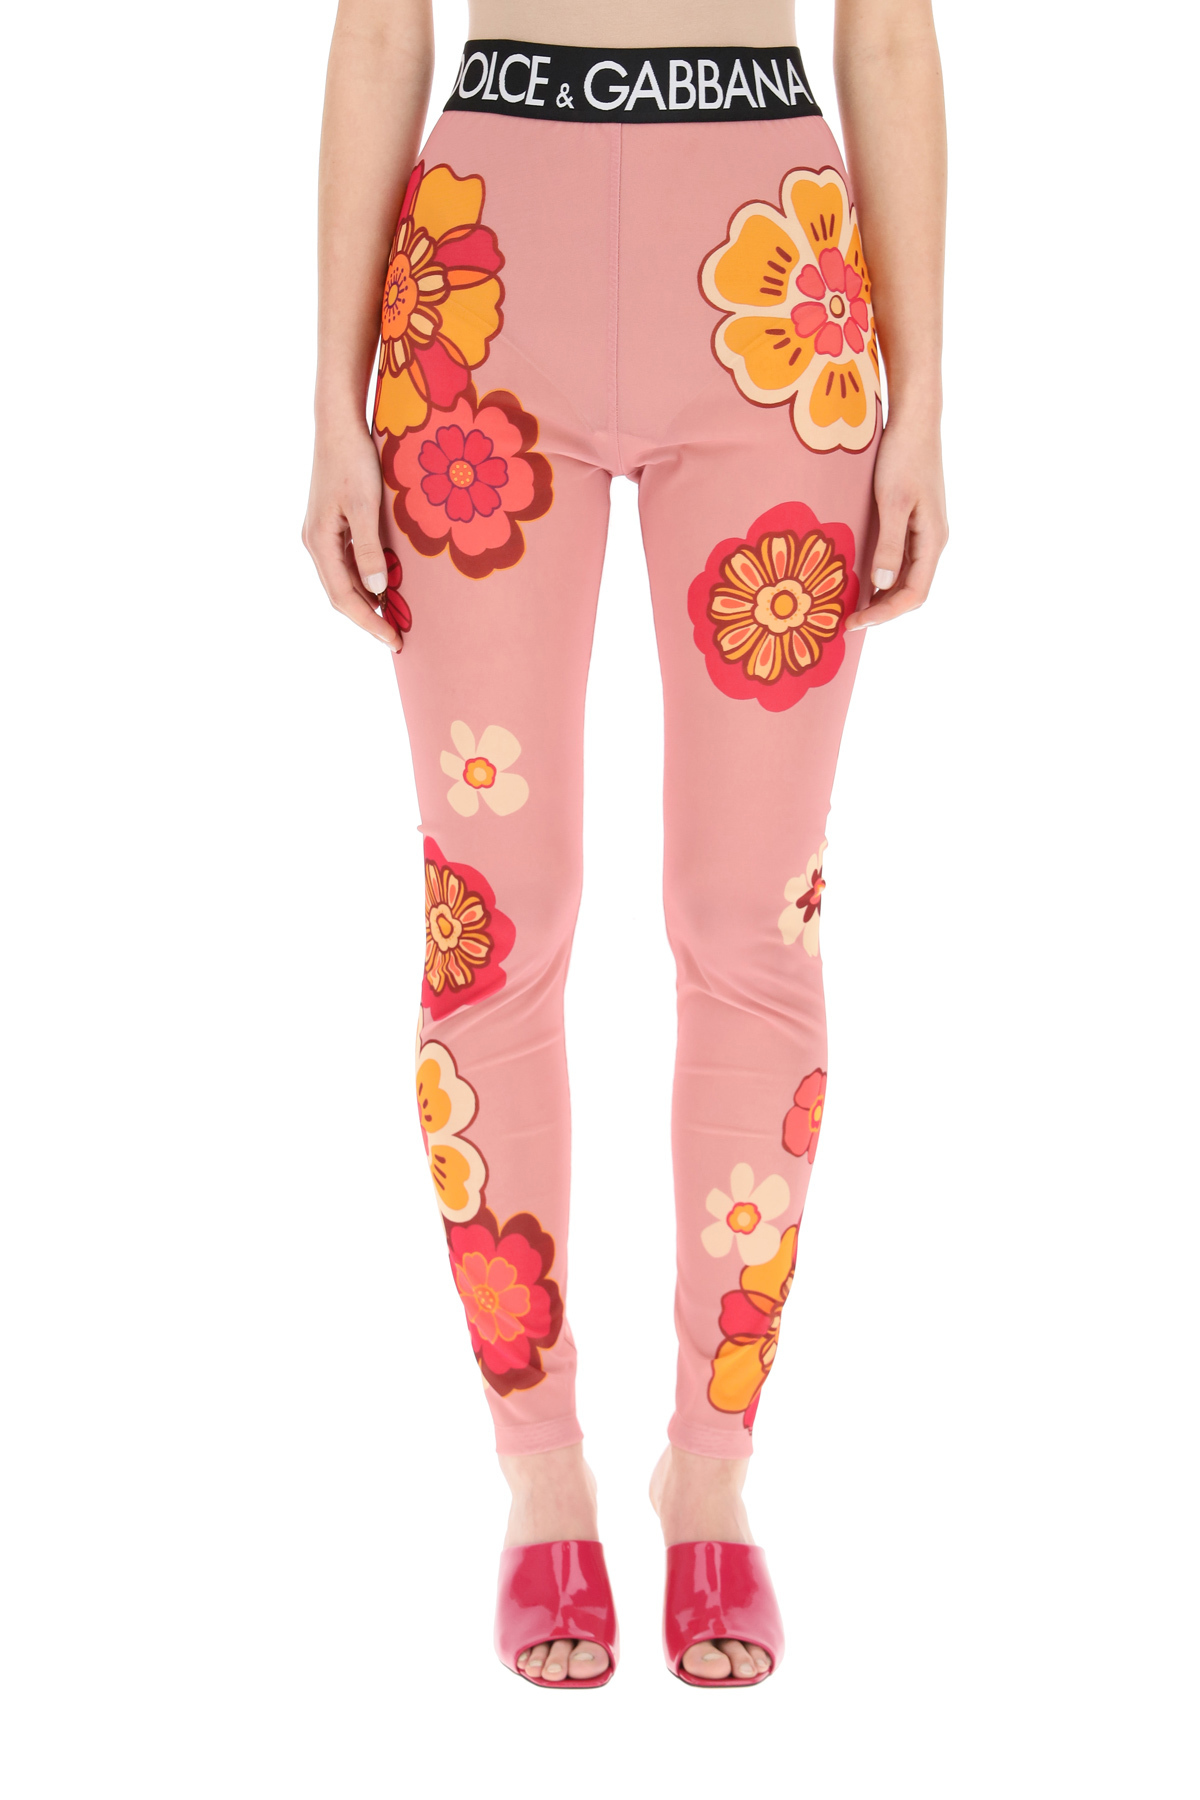 Dolce & gabbana leggings in marquisette stampa floreale